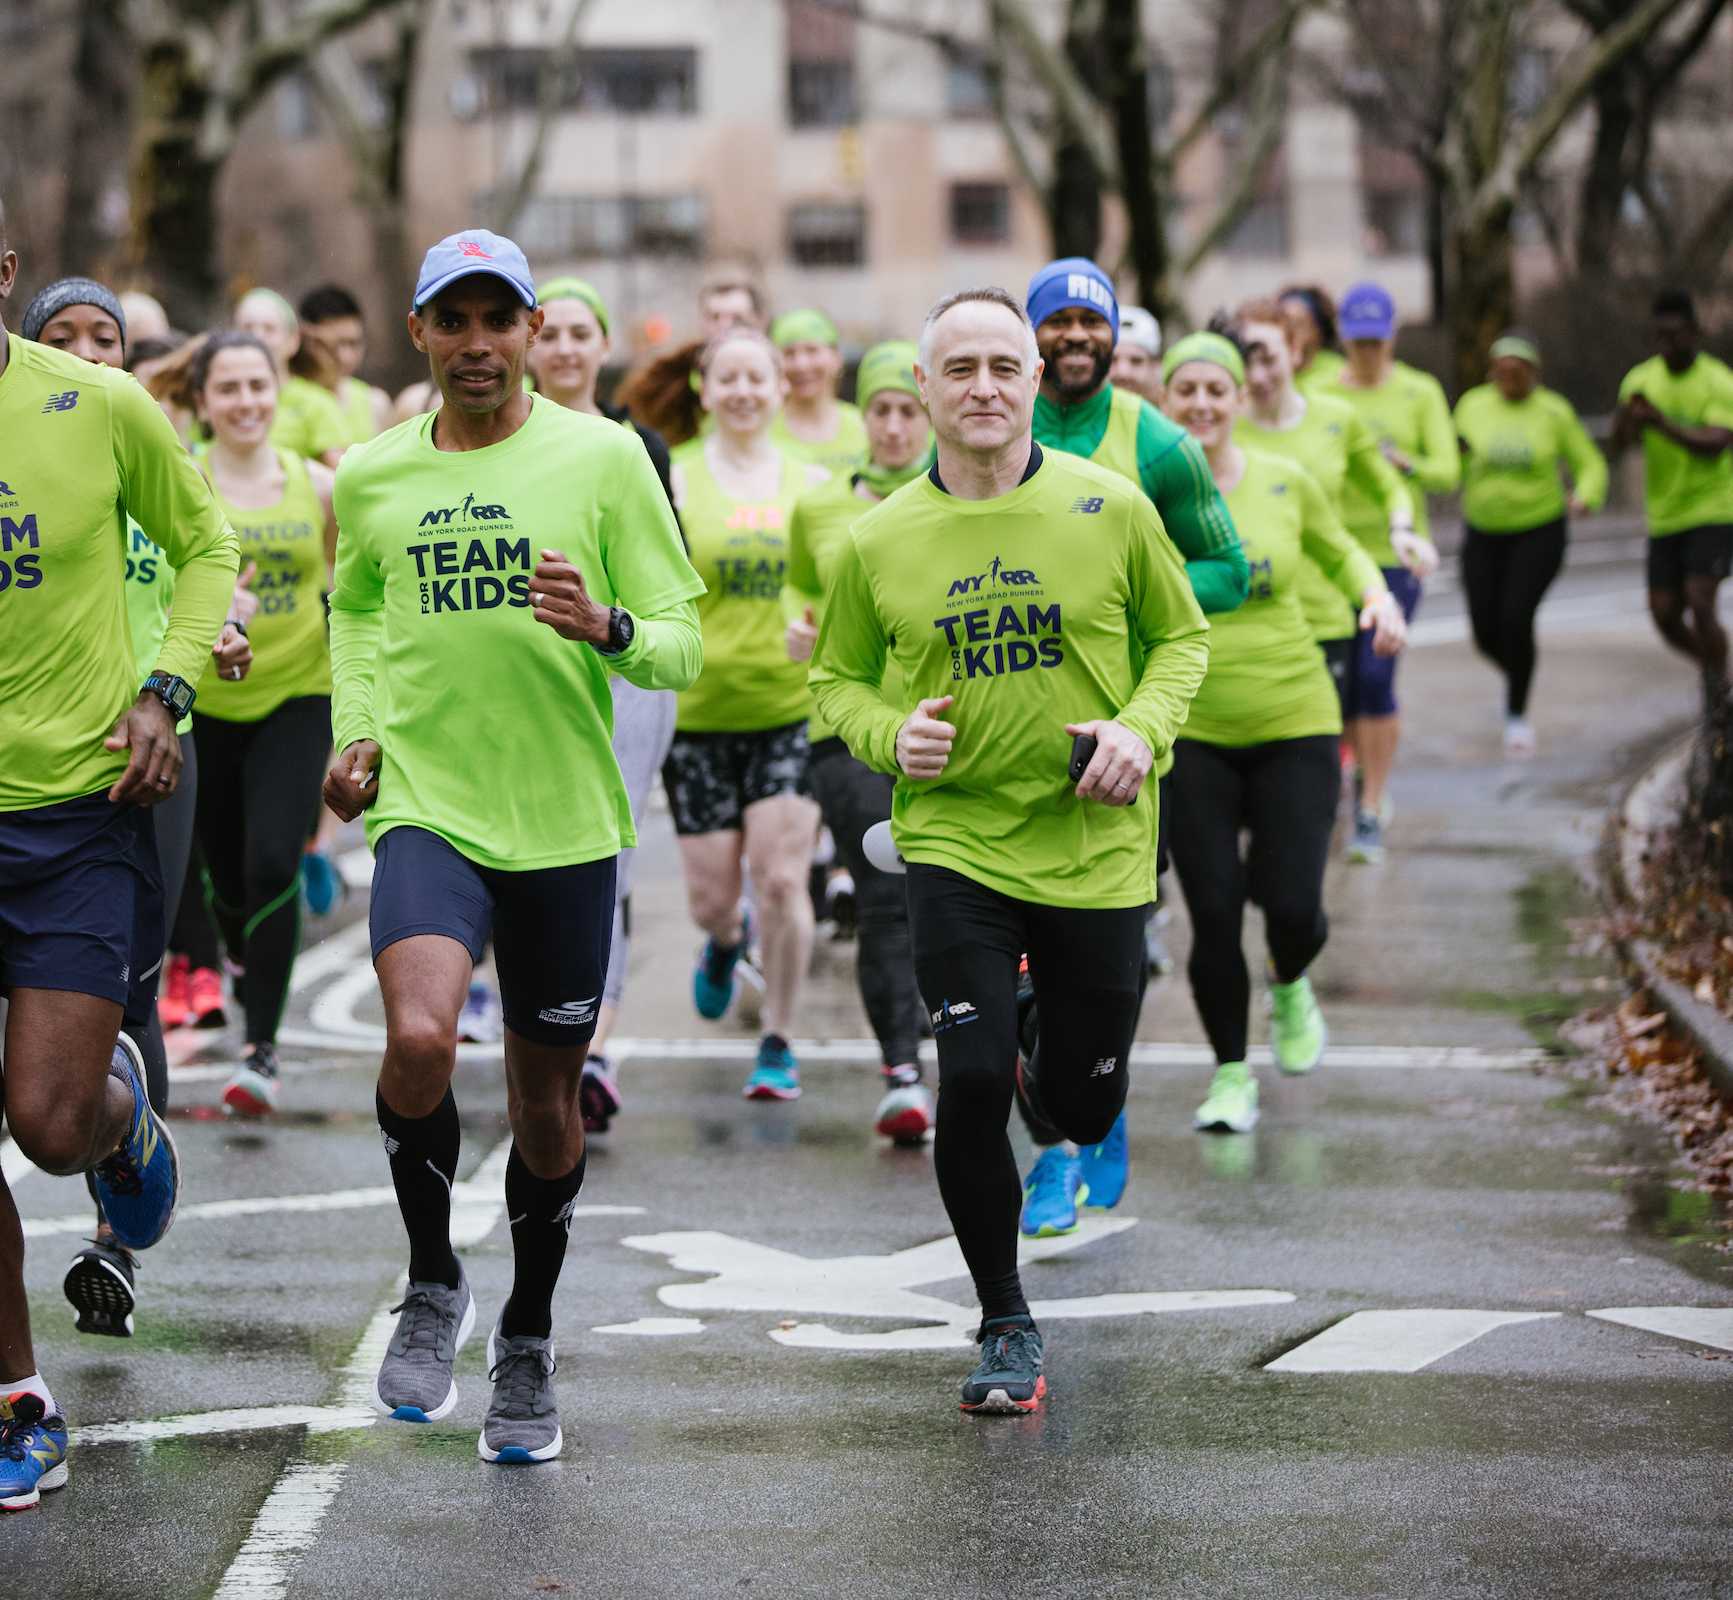 Meb Keflezighi and Michael Capiraso running together